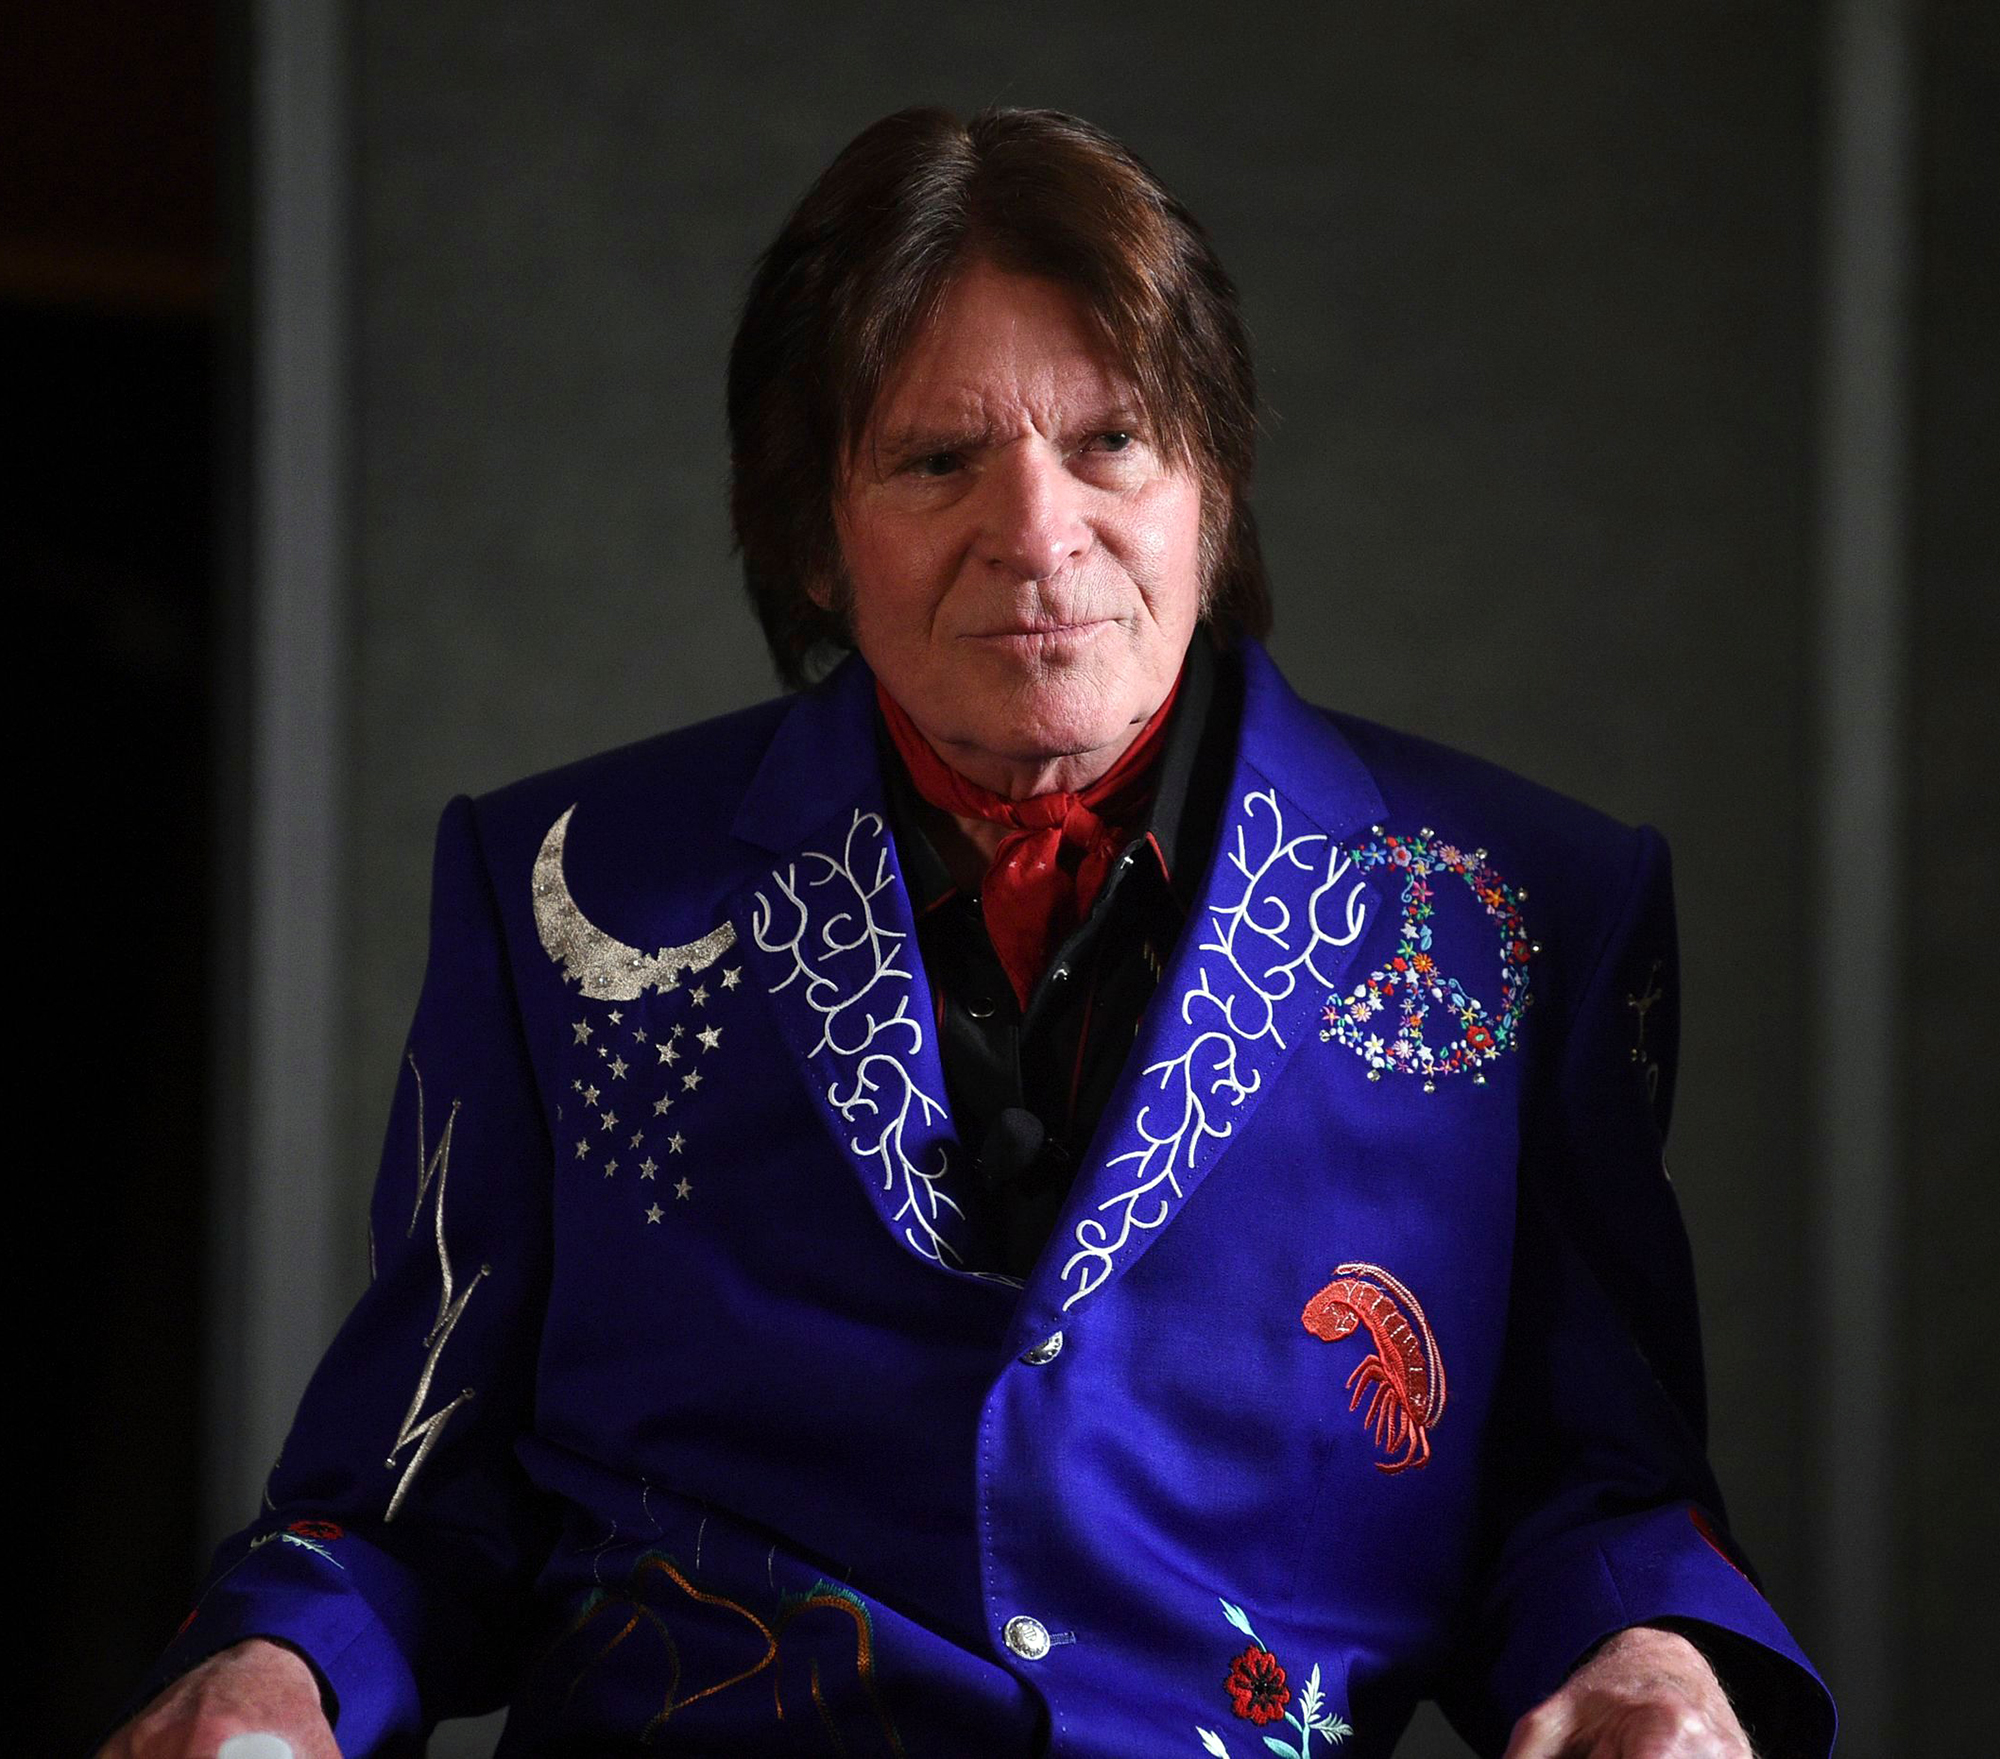 John Fogerty participates in the Woodstock 50 lineup announcement at Electric Lady Studios in New York. Fogerty has pulled out of Woodstock 50 weeks before the trouble anniversary event is supposed to take place. A representative for the singer tells The Associated Press that Fogerty, who performed at the original festival in 1969, will now only perform at a smaller Woodstock anniversary event held at the original site in Bethel, N.YWoodstock 50 Fogerty, New York, USA - 19 Mar 2019